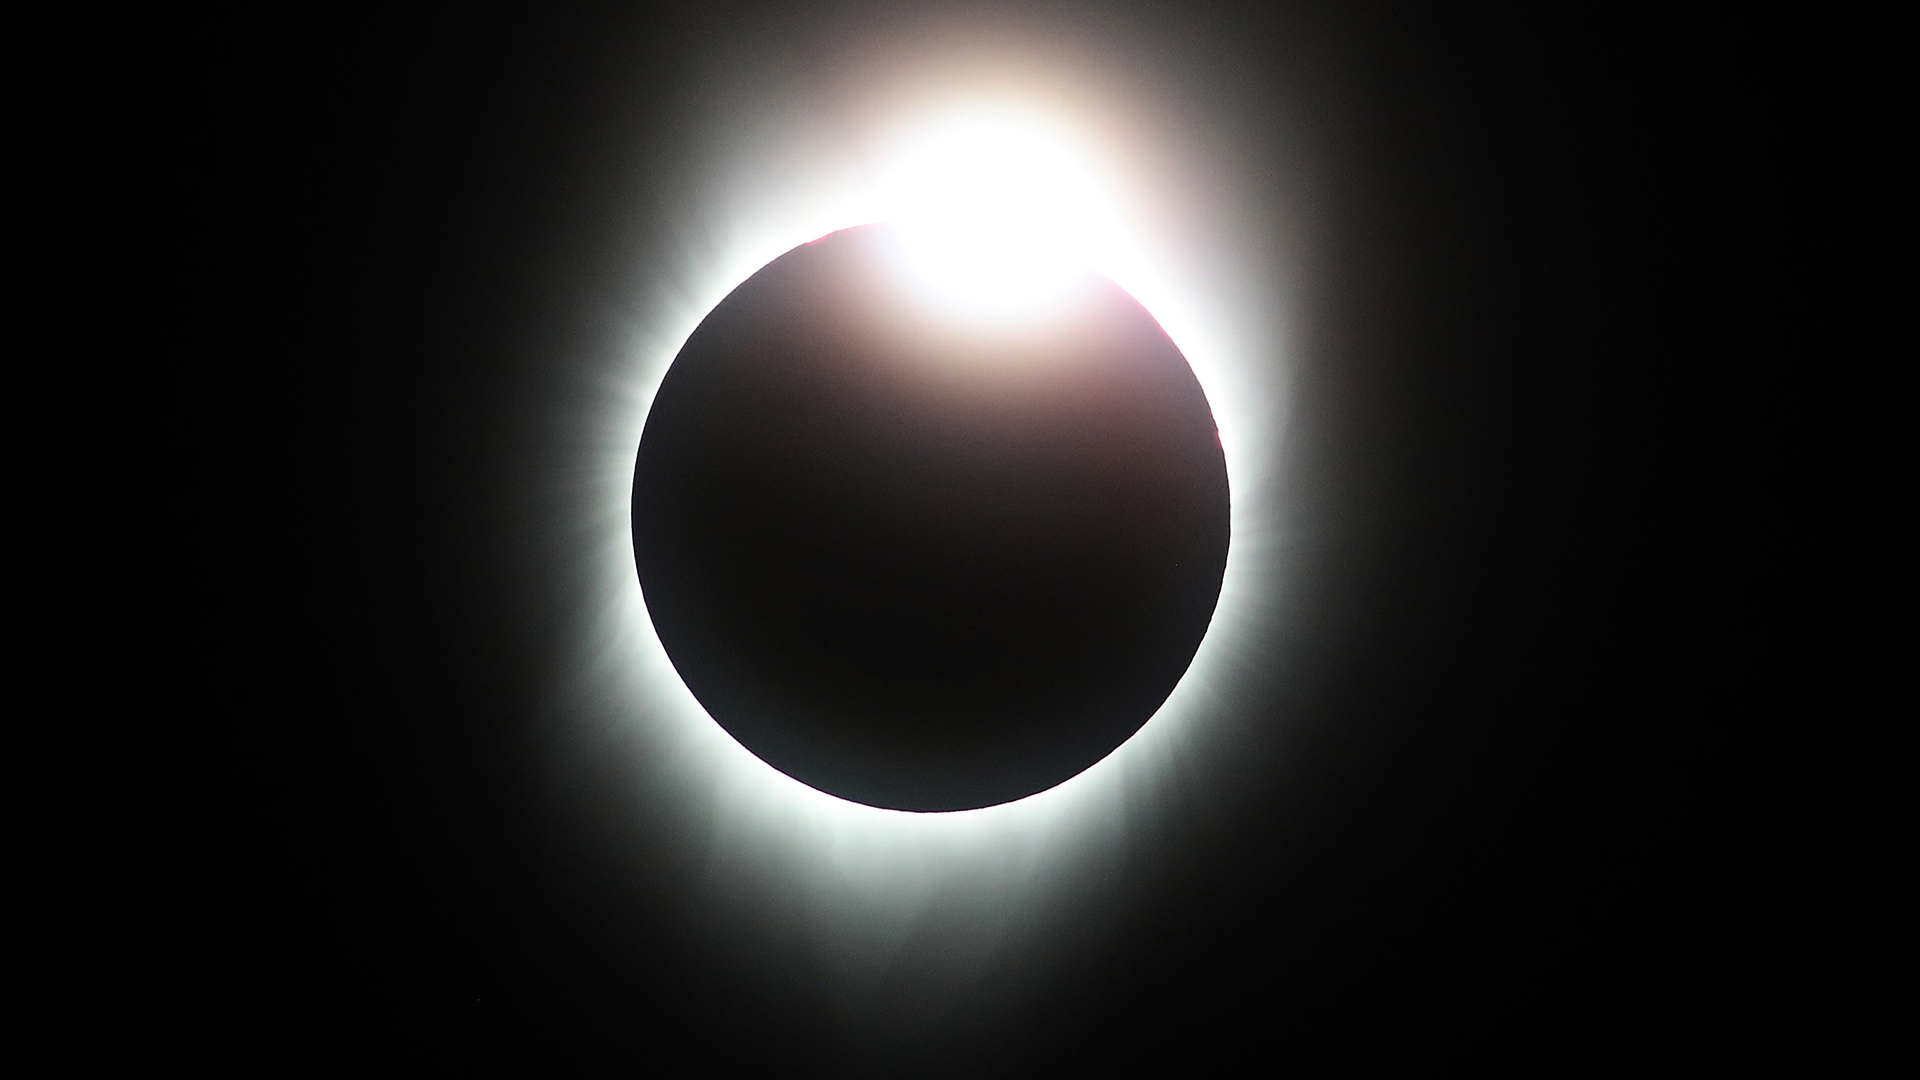 Watching solar eclipse Diamond Ring-159532.jpg80544646